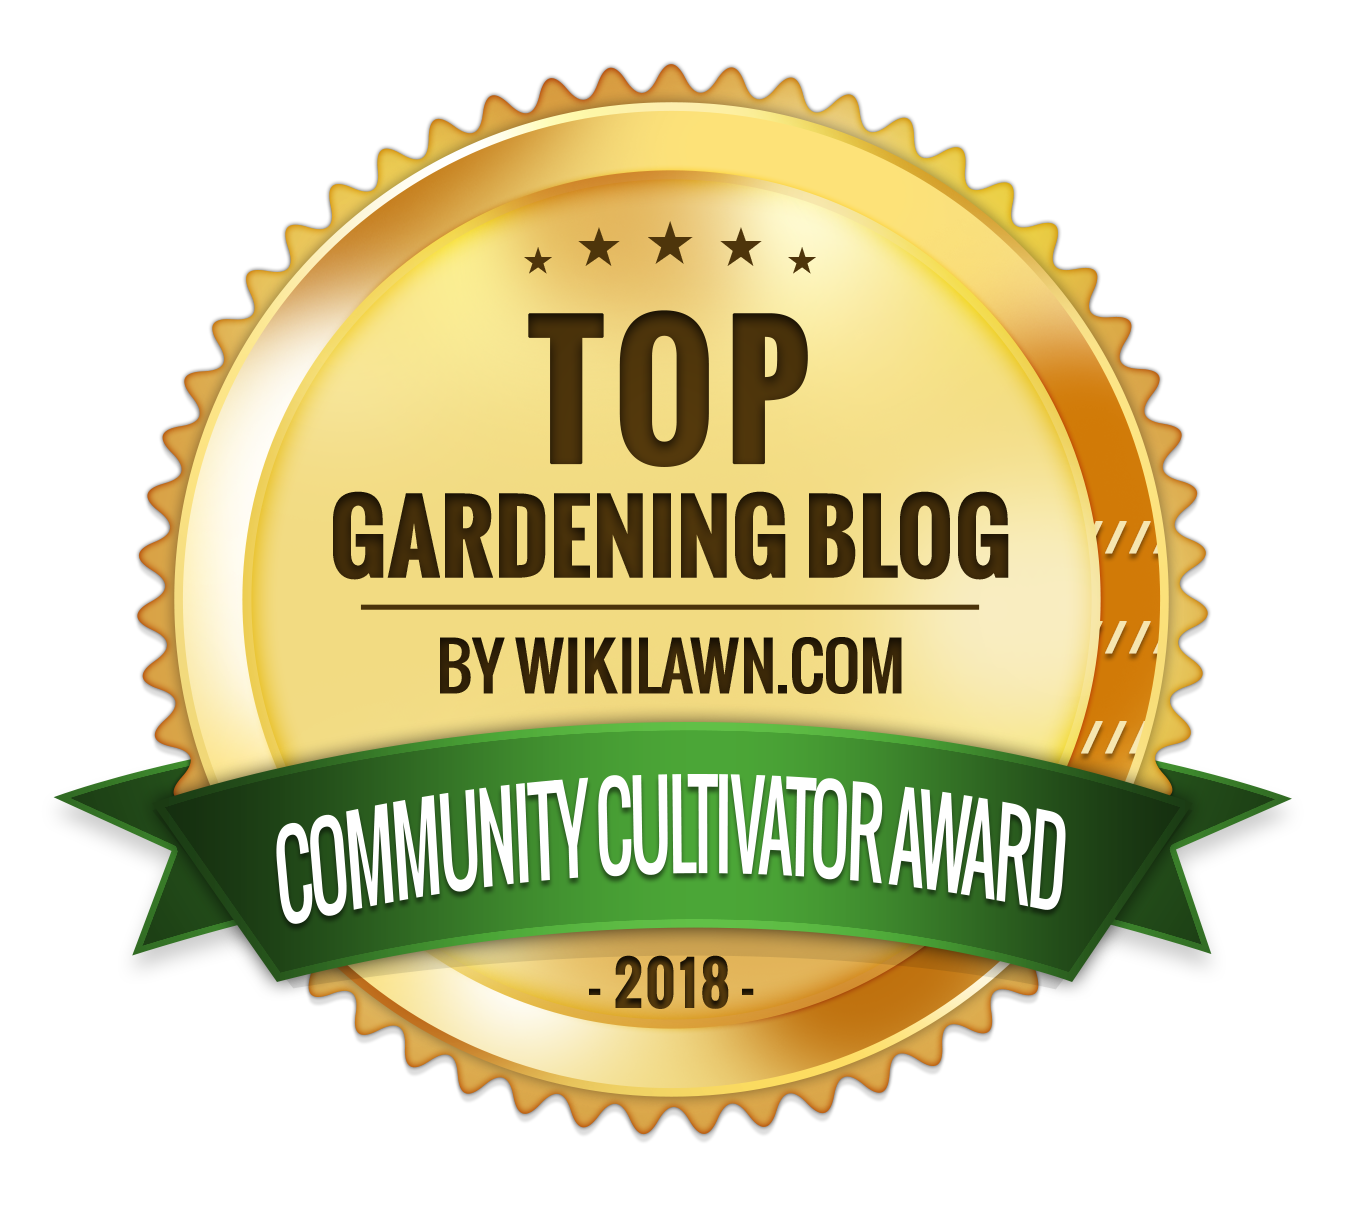 The 2018 Community Cultivator Awards